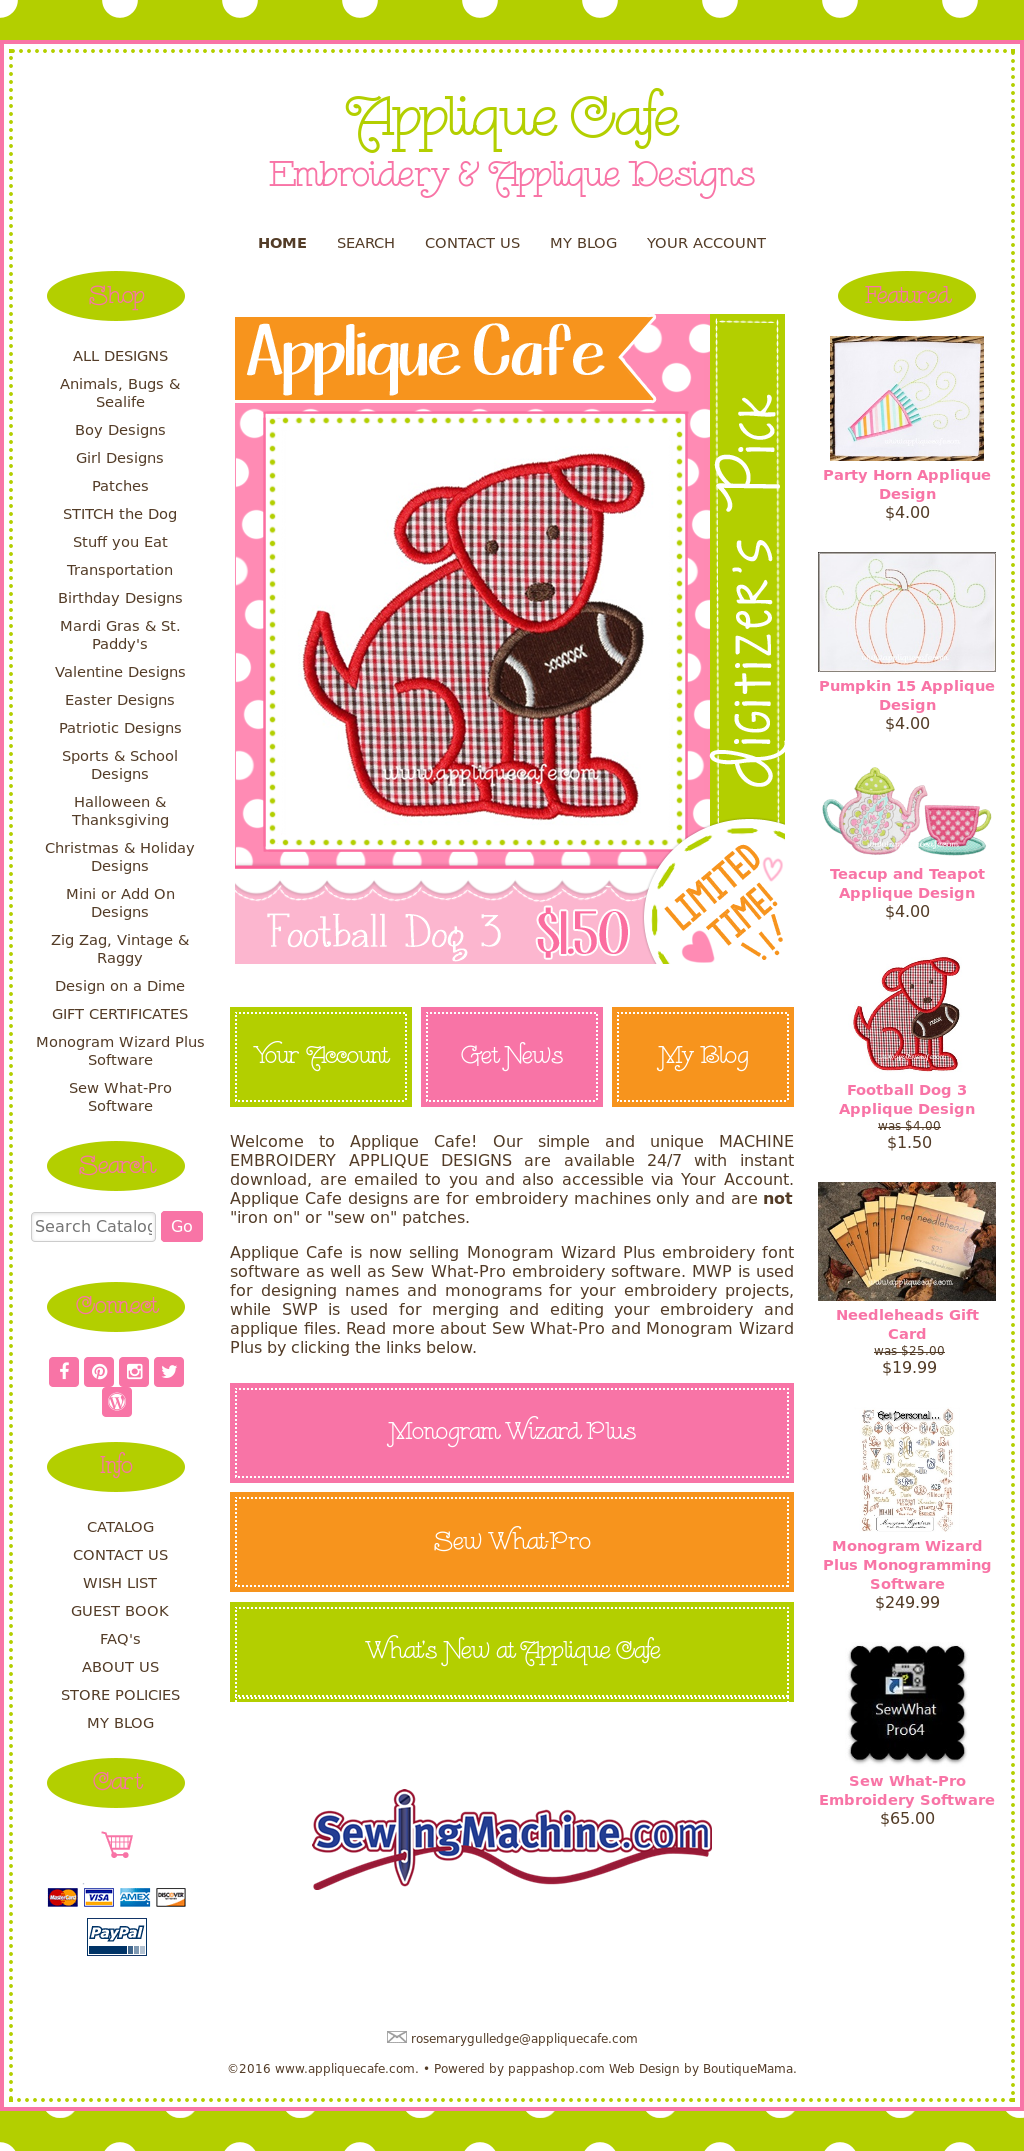 Applique Cafe Competitors, Revenue and Employees - Owler Company Profile